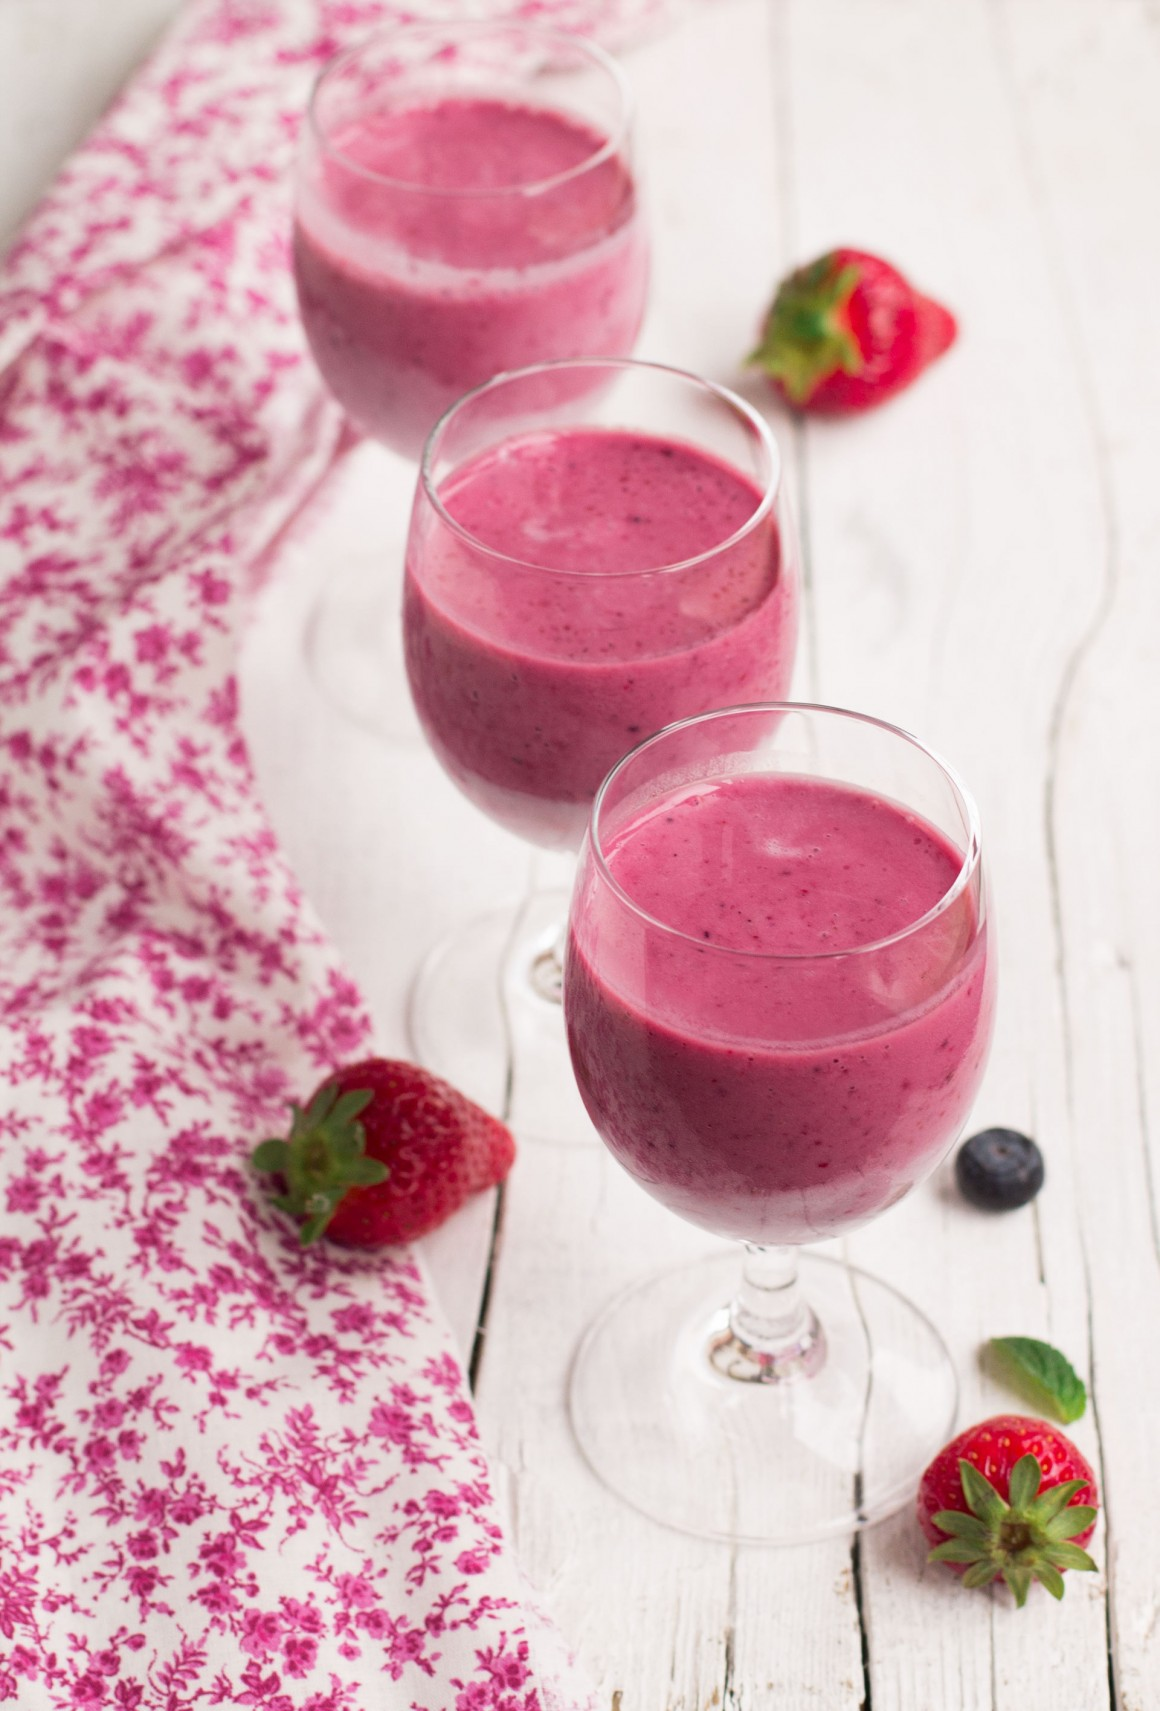 smoothie-frutti-di-bosco